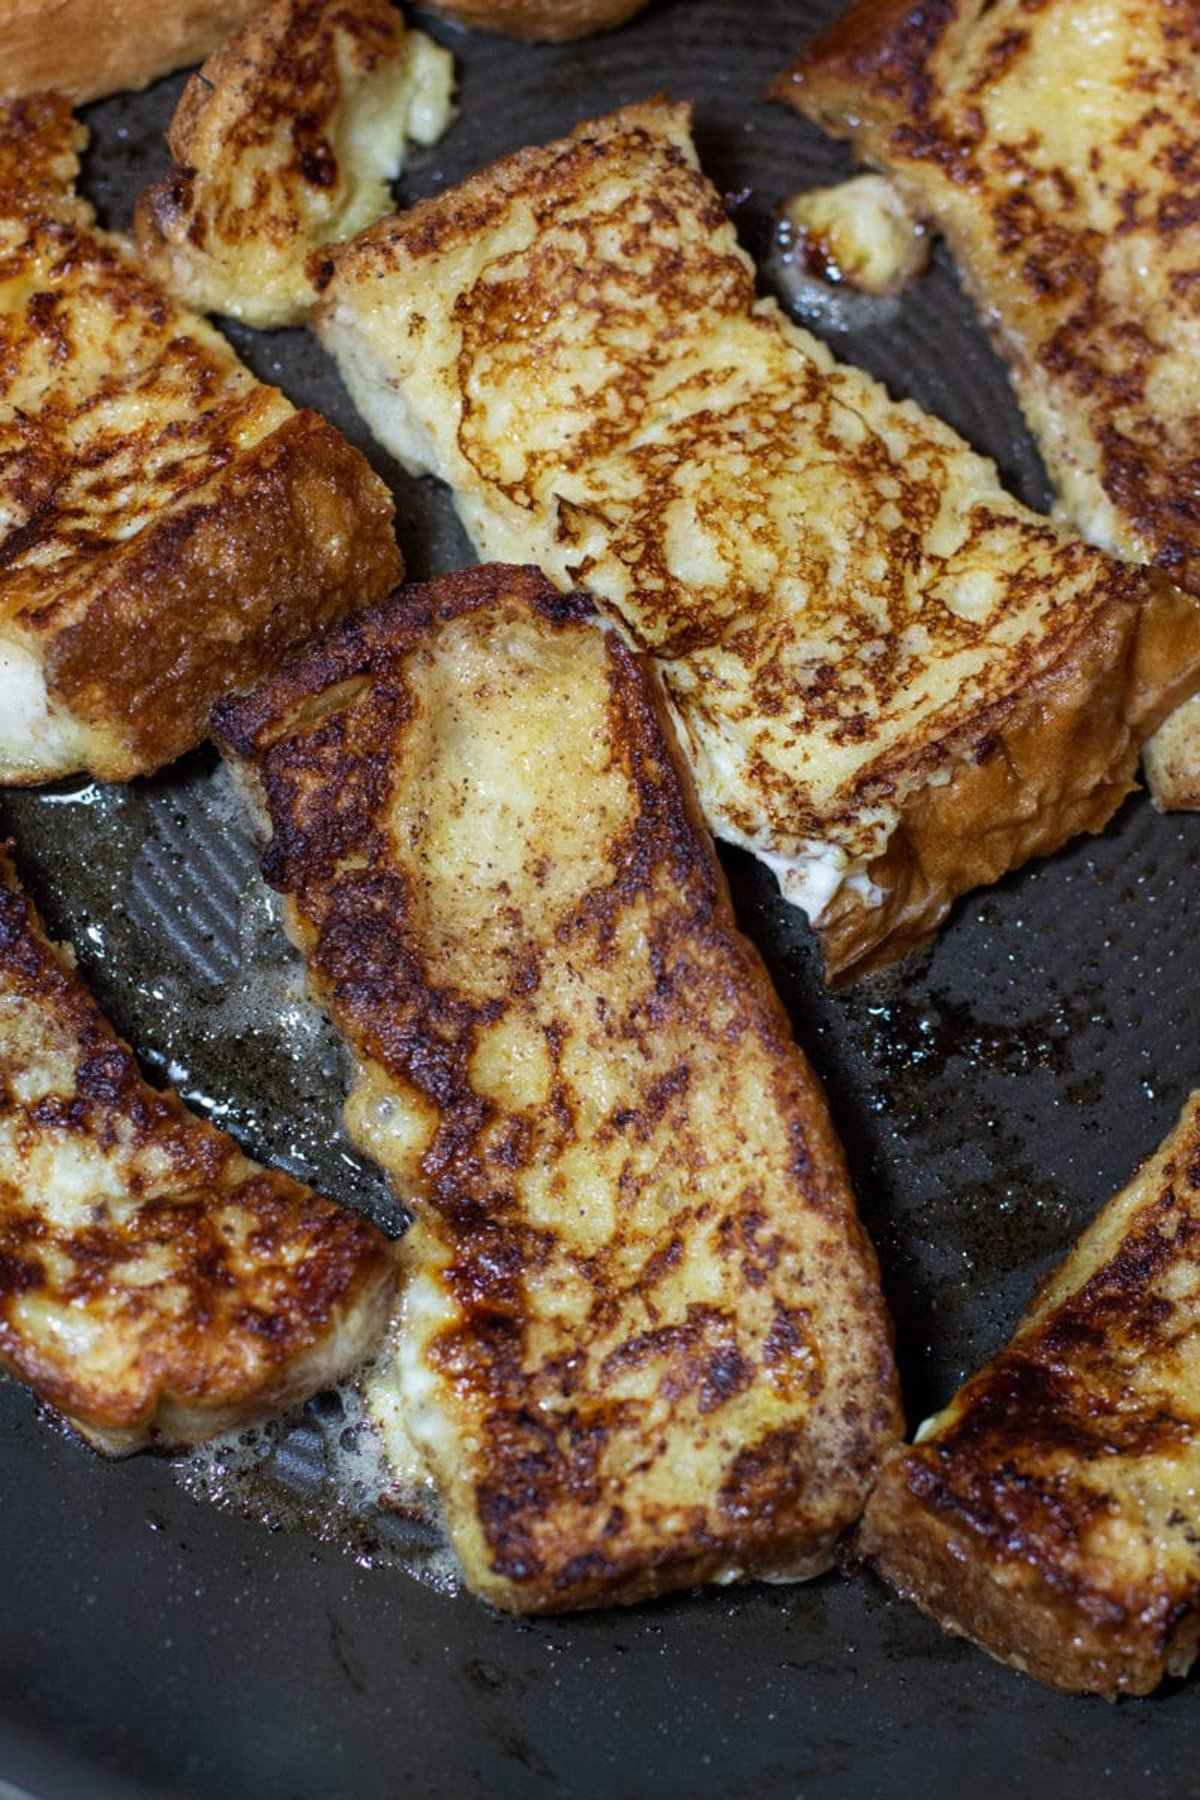 French toast sticks being sauteed in butter in a pan.